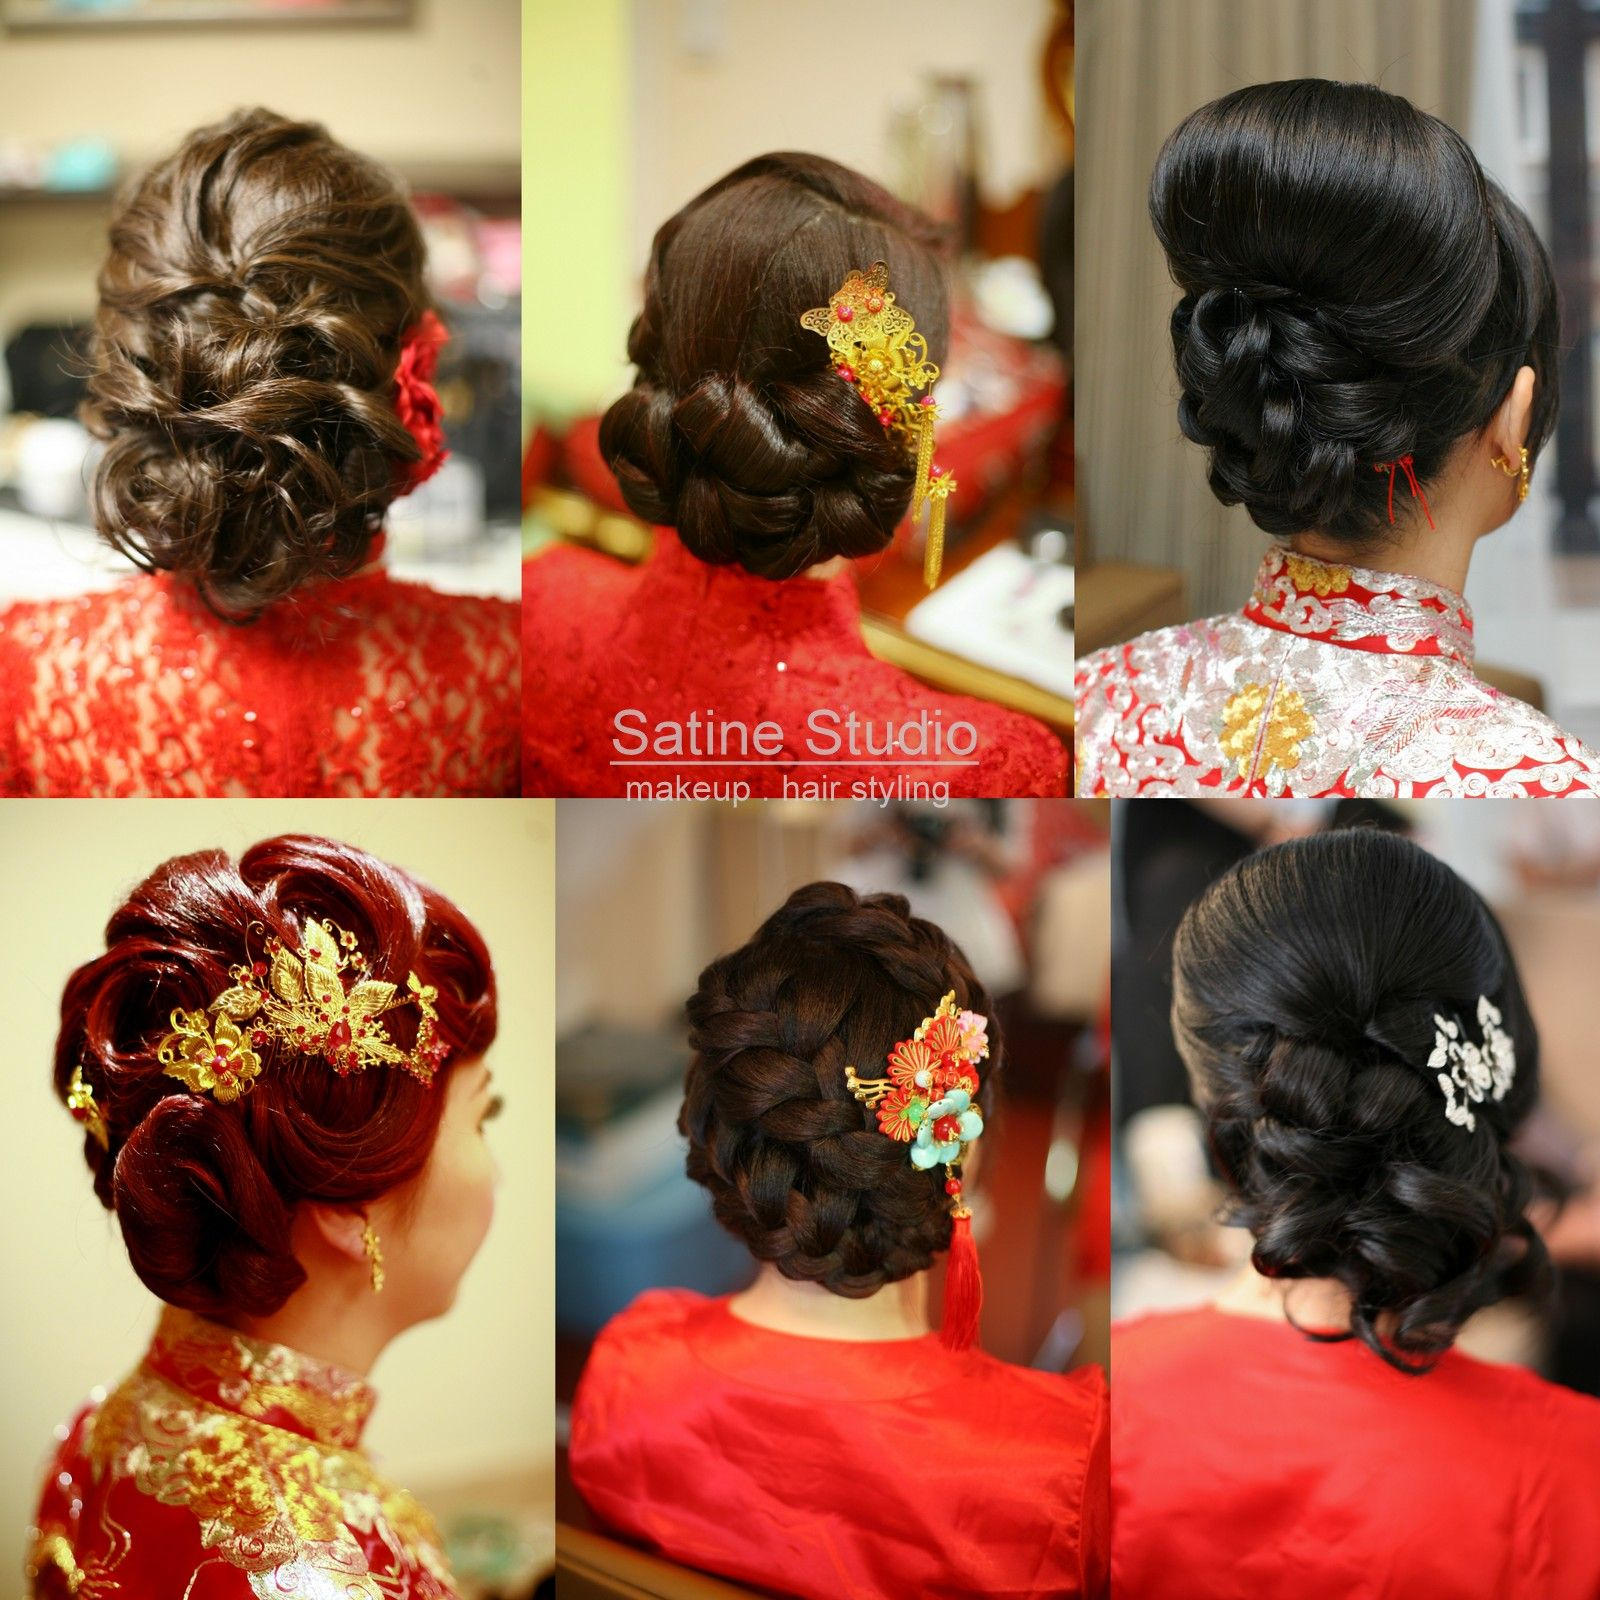 Chinese Bridal Hairstyles Classic Sleek Updo 新娘盘头发型: Chinese Wedding Hairstyles Satinestudio.com Bridal Updo